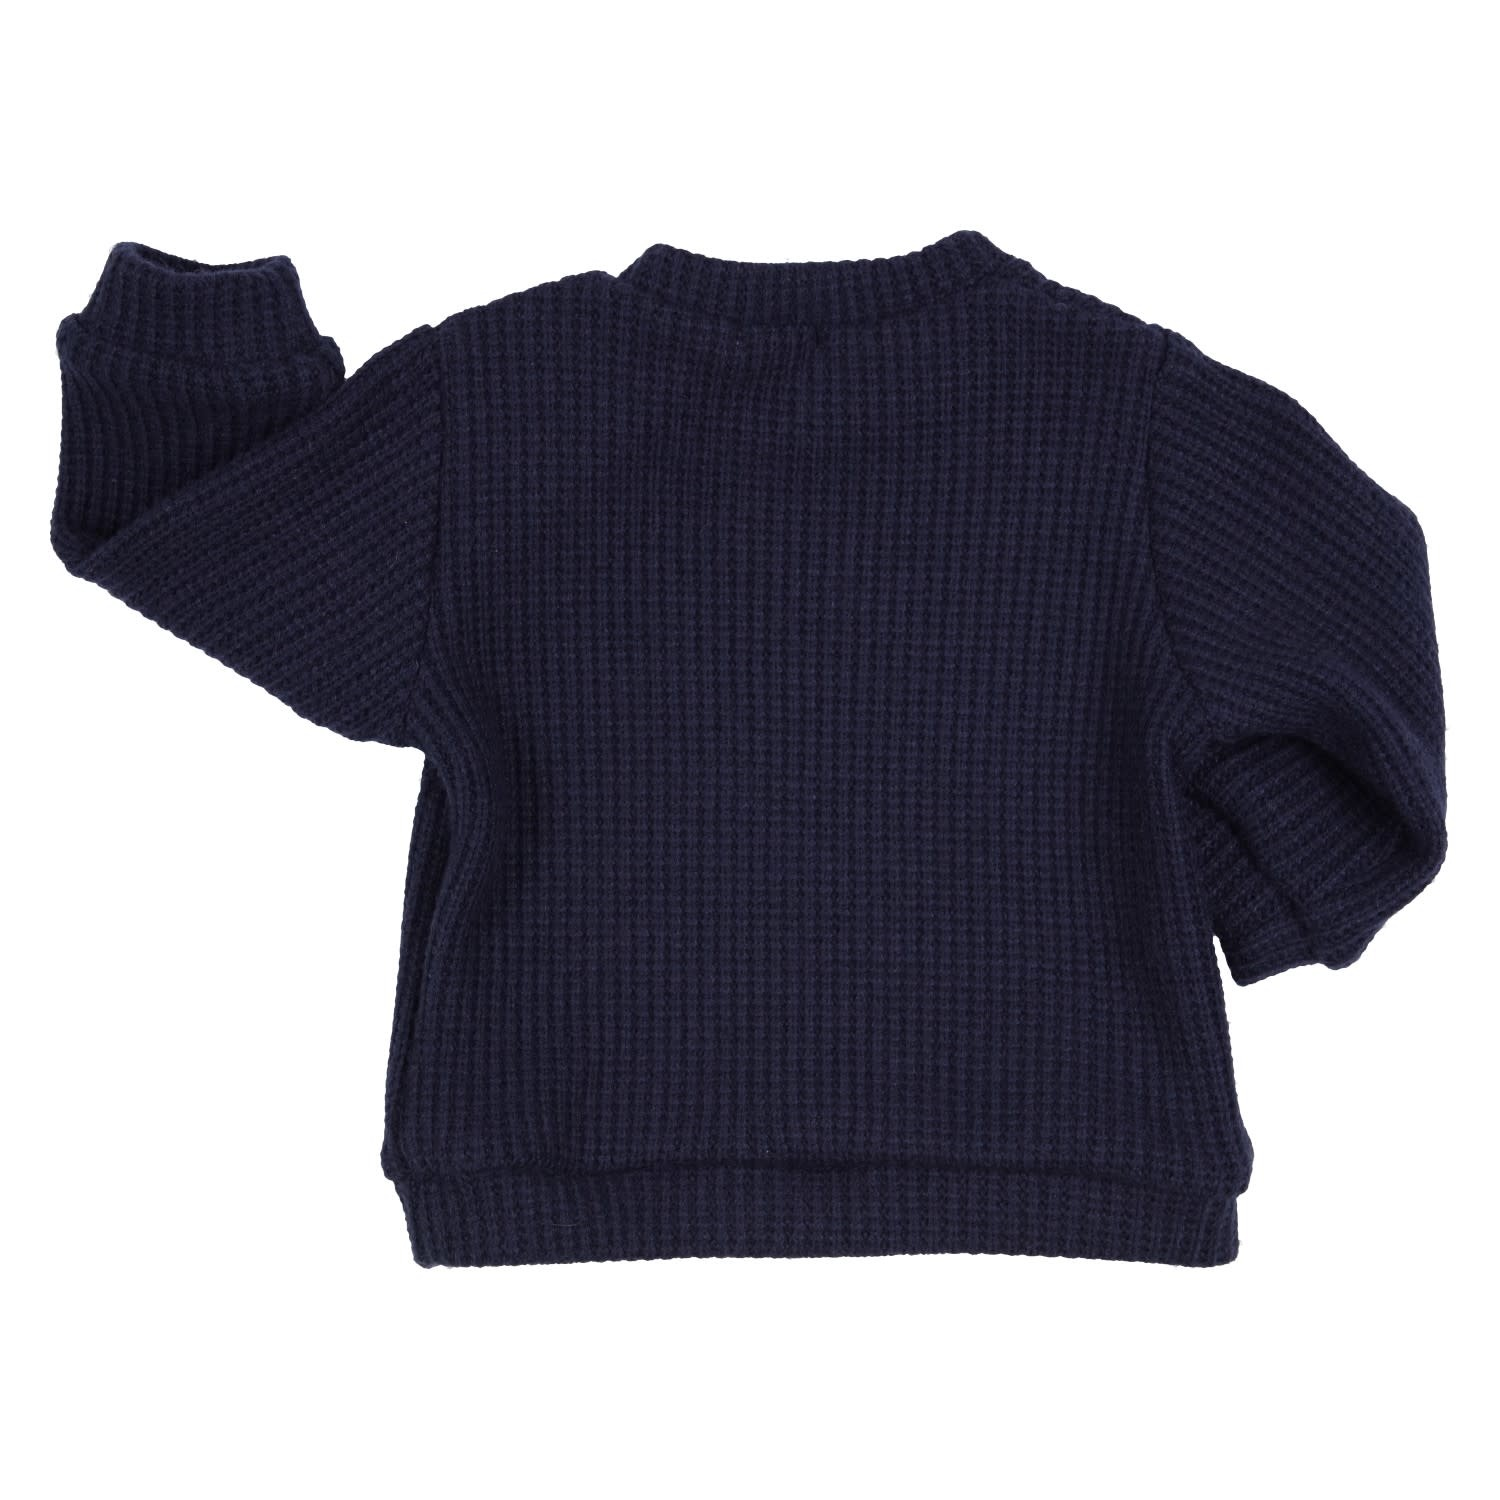 Gymp Navy Knitted Sweater